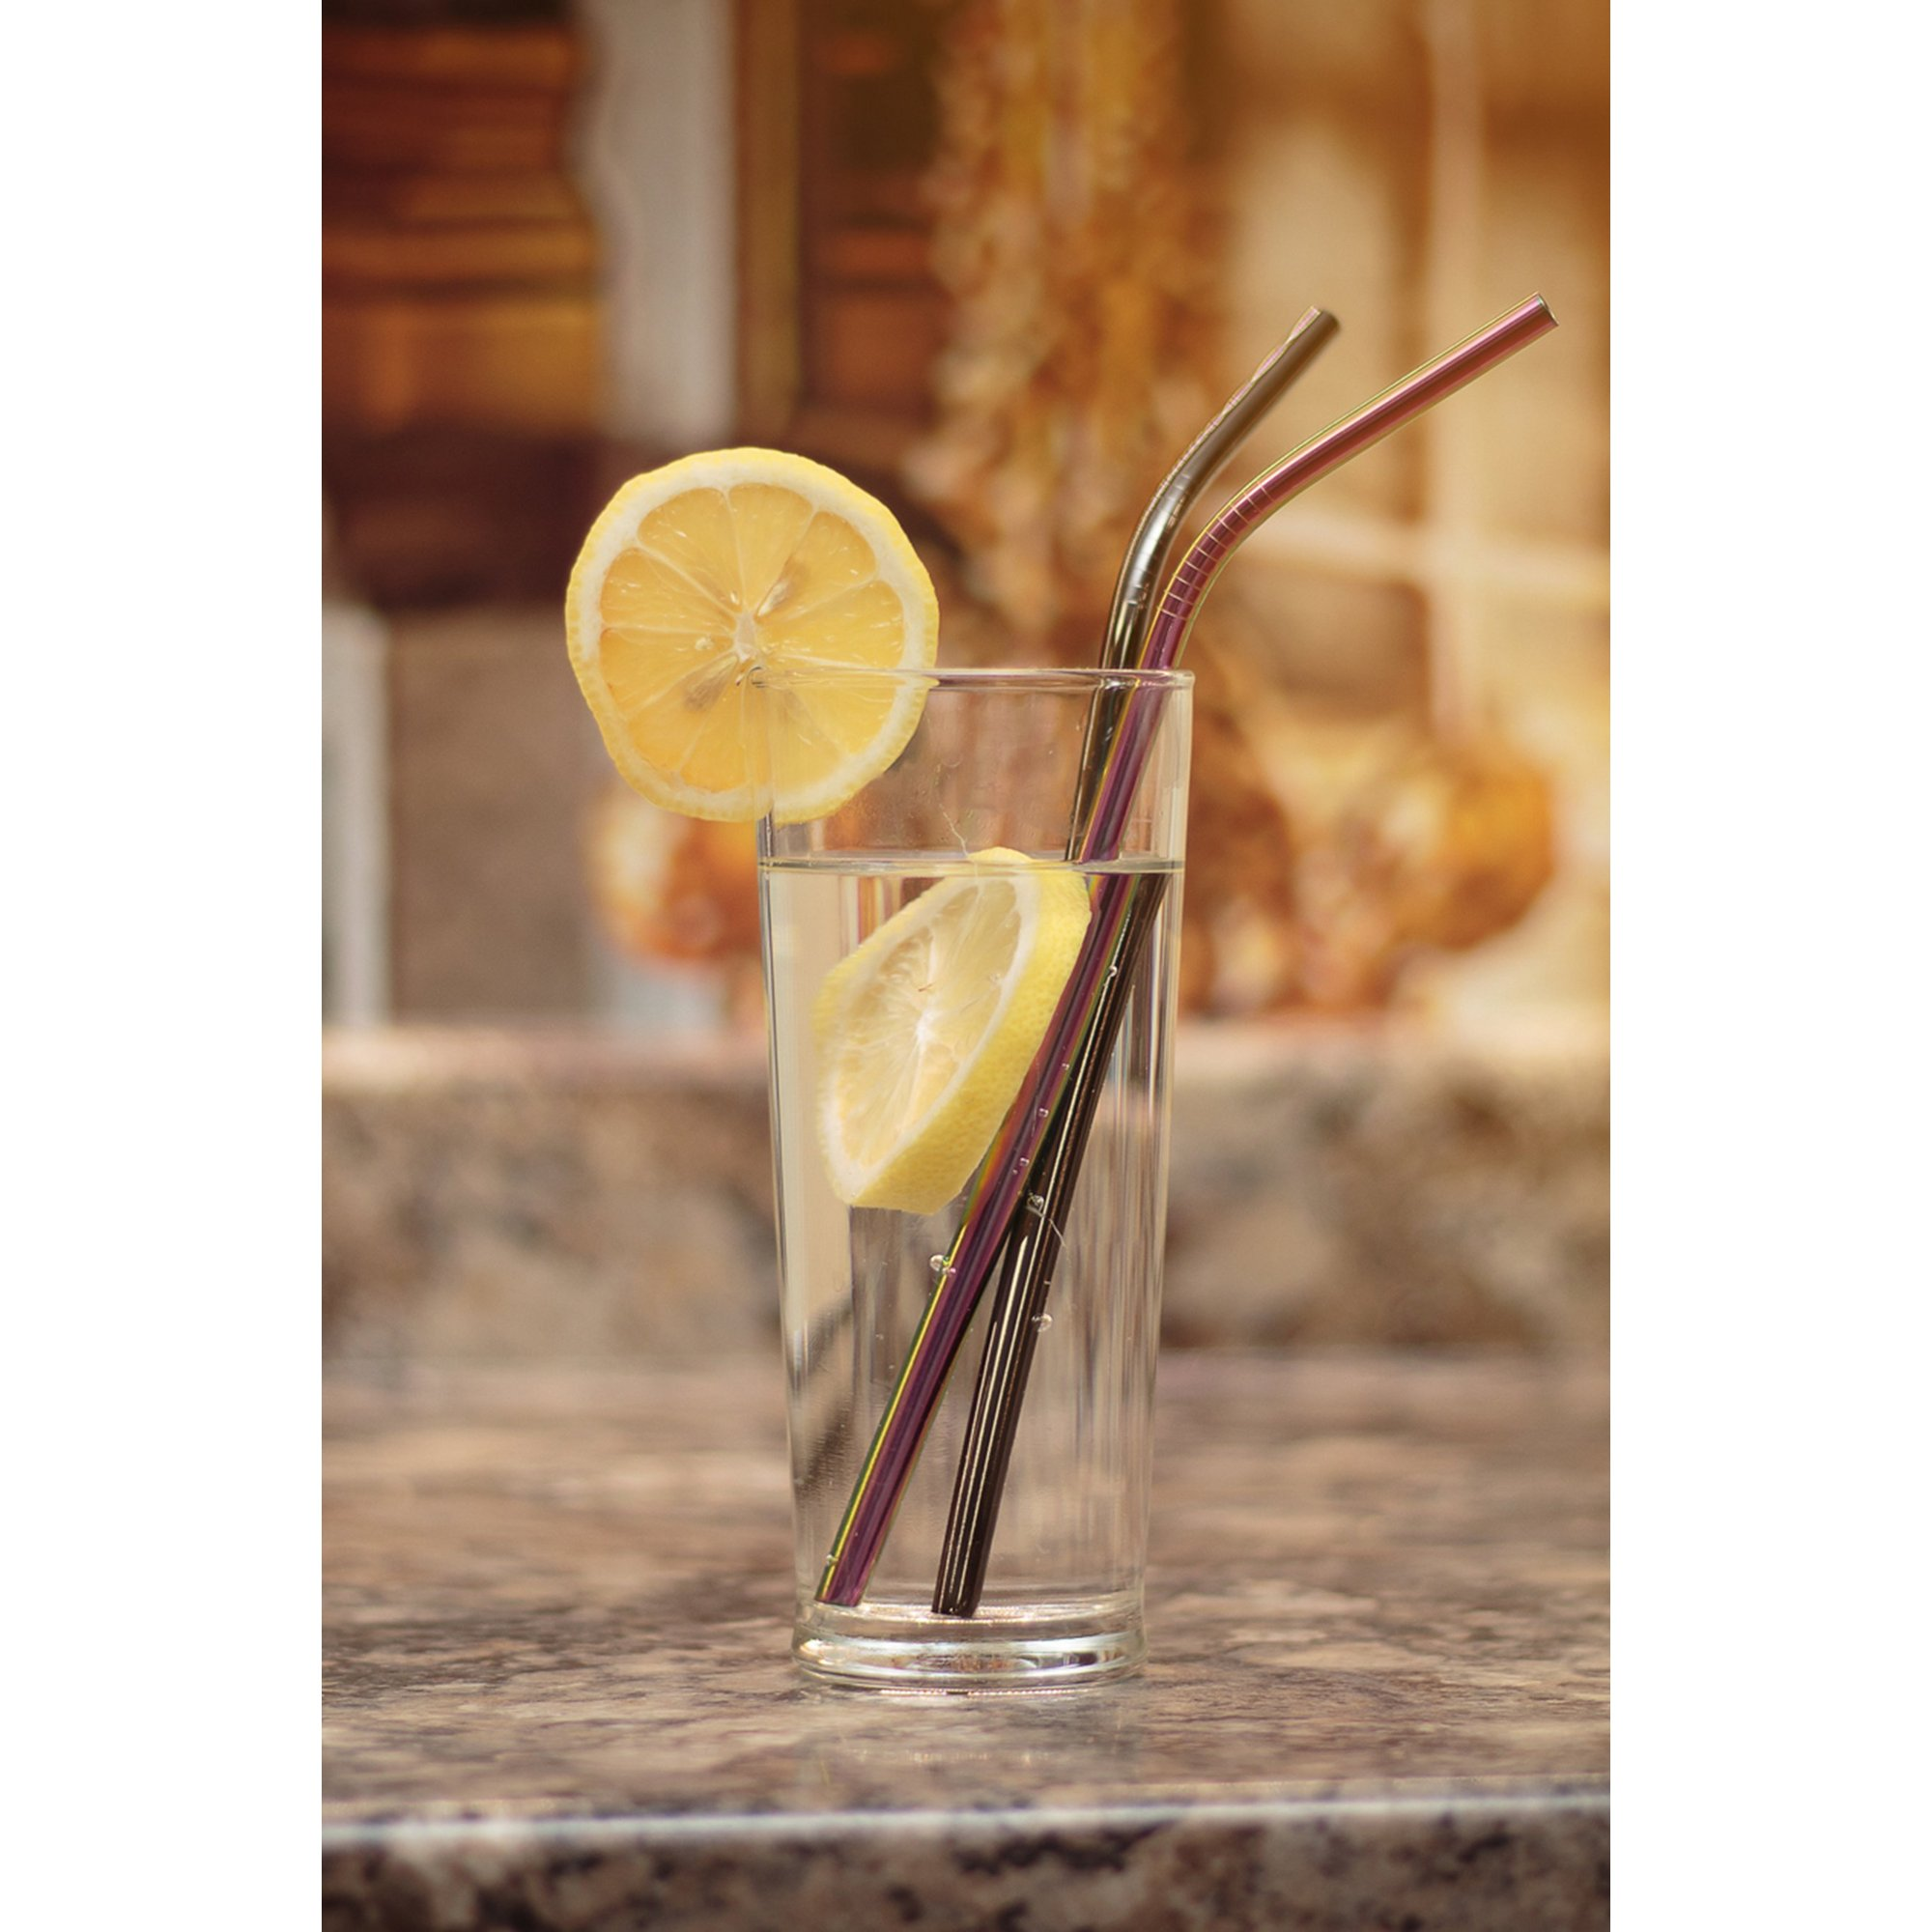 Image of 6 Piece Stainless Steel Straws